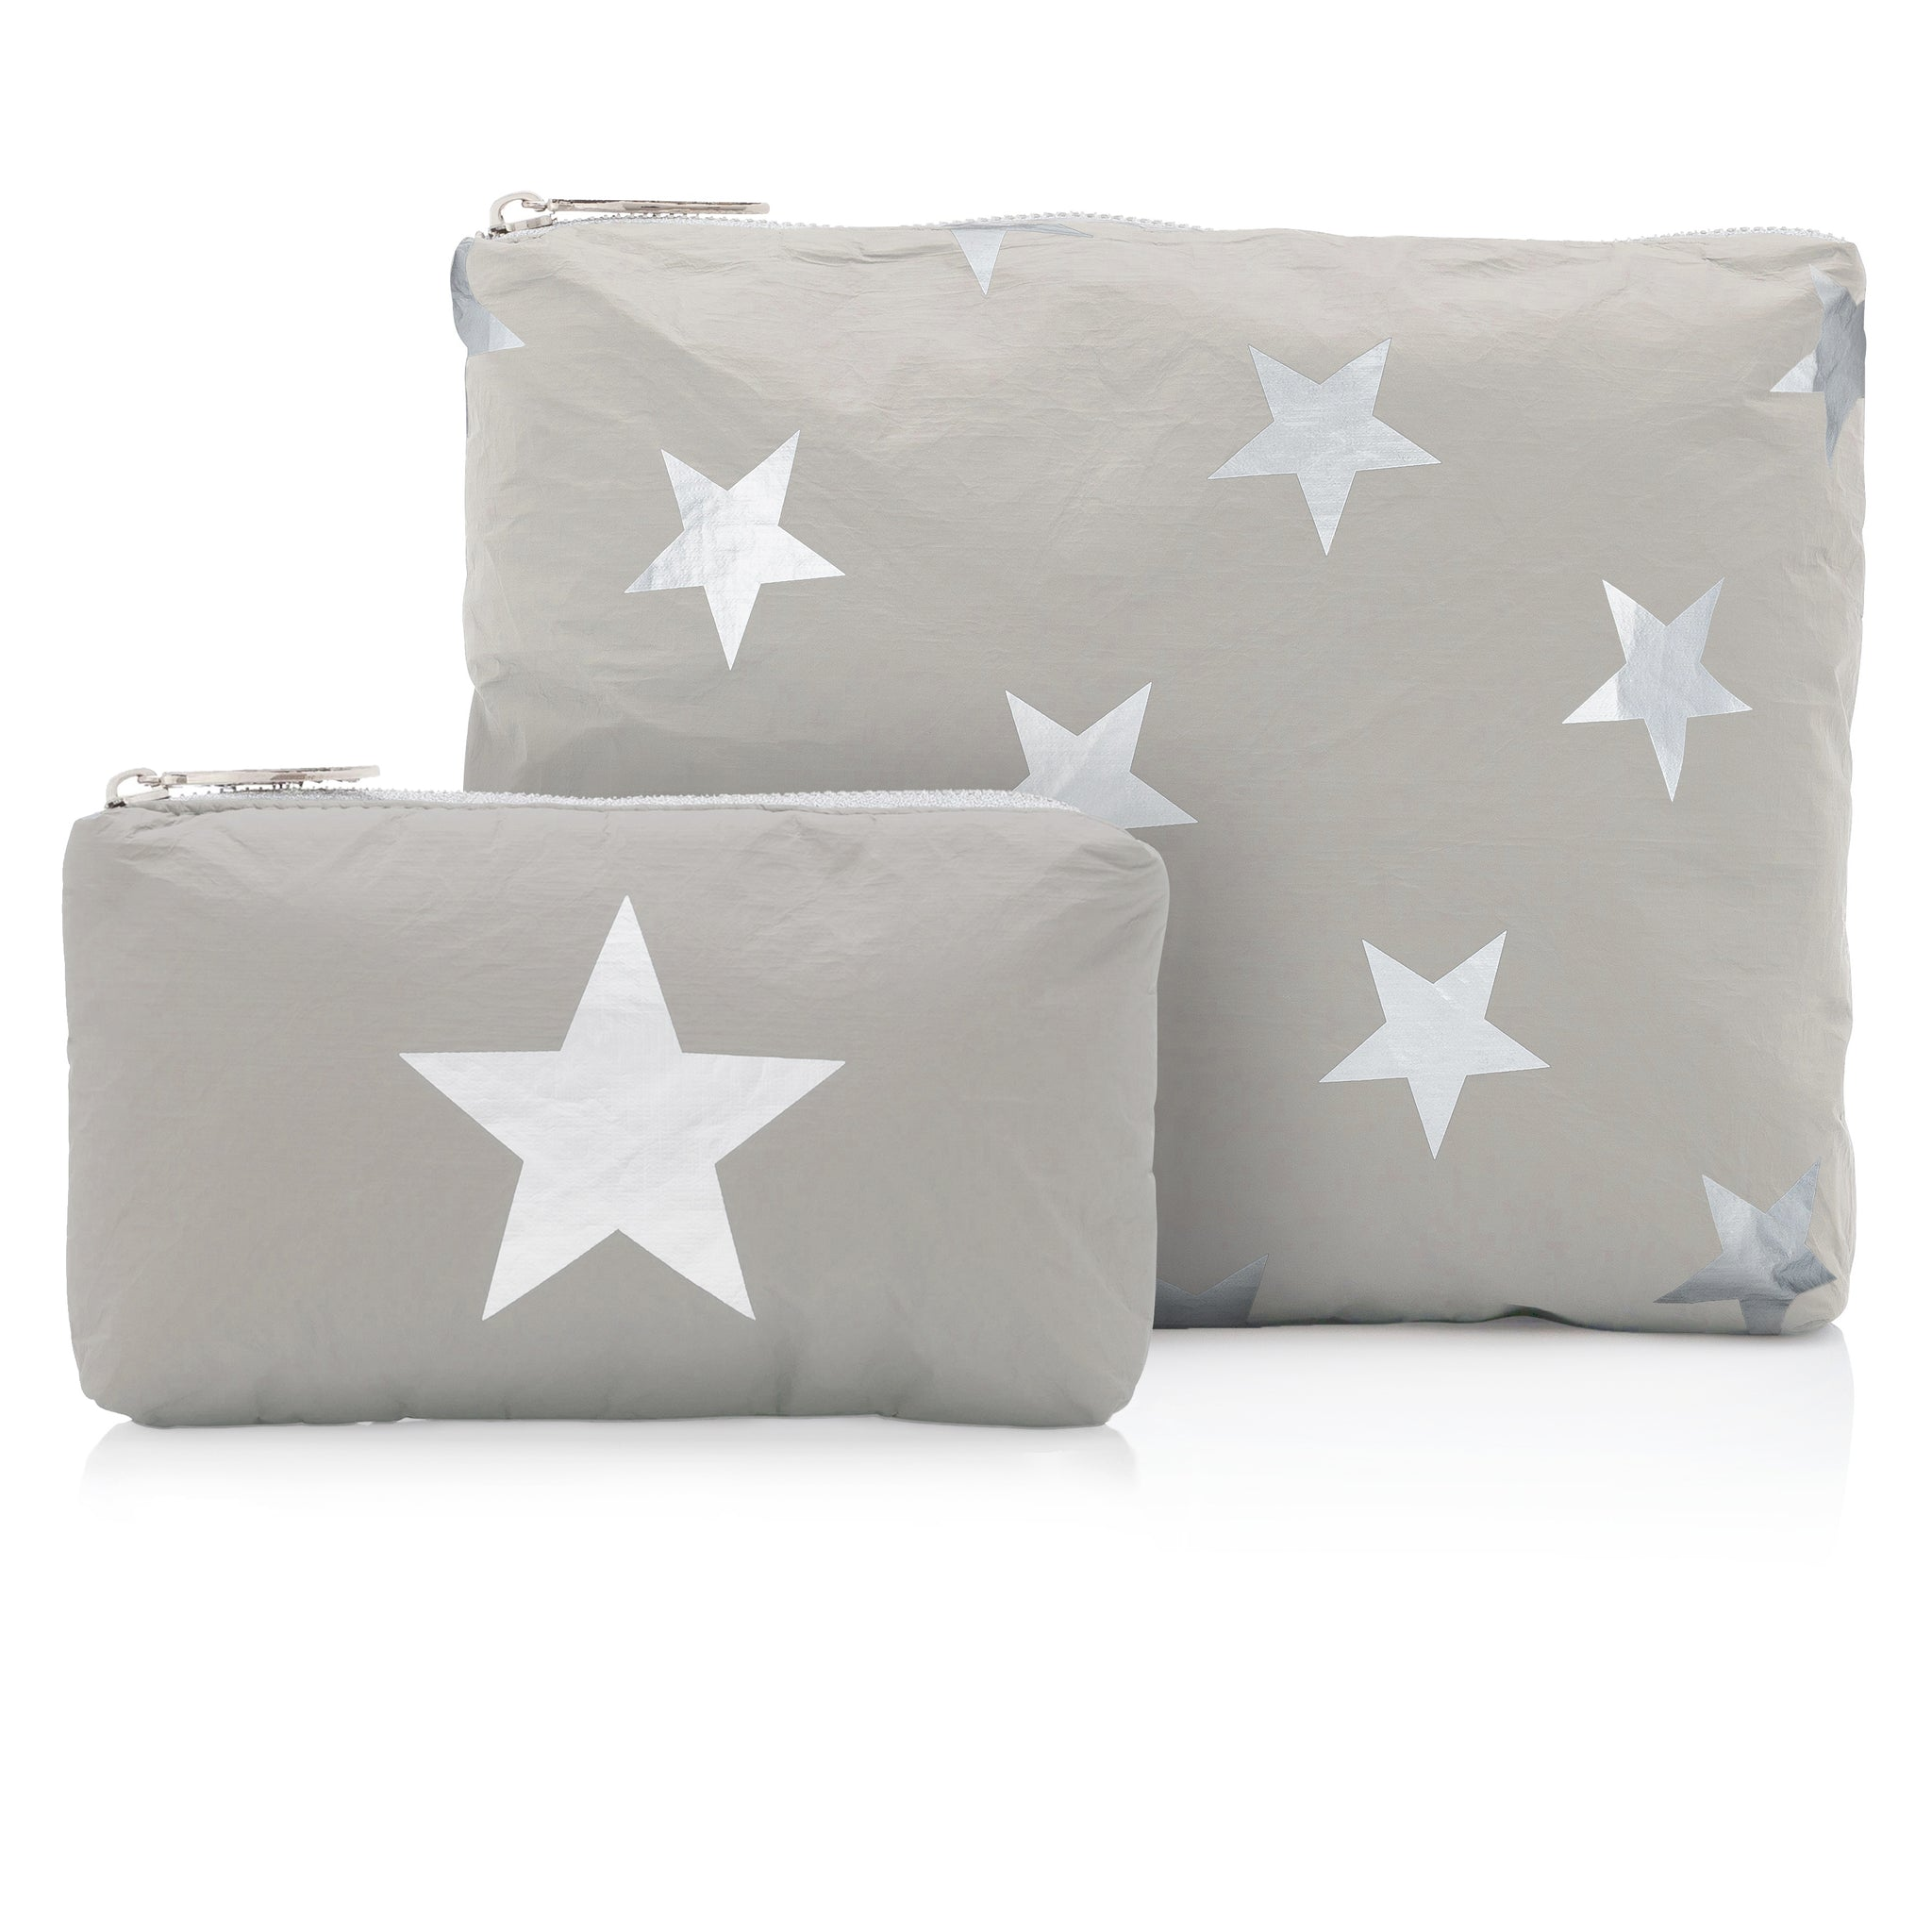 Set of Two - Earth Gray with Silver Stars